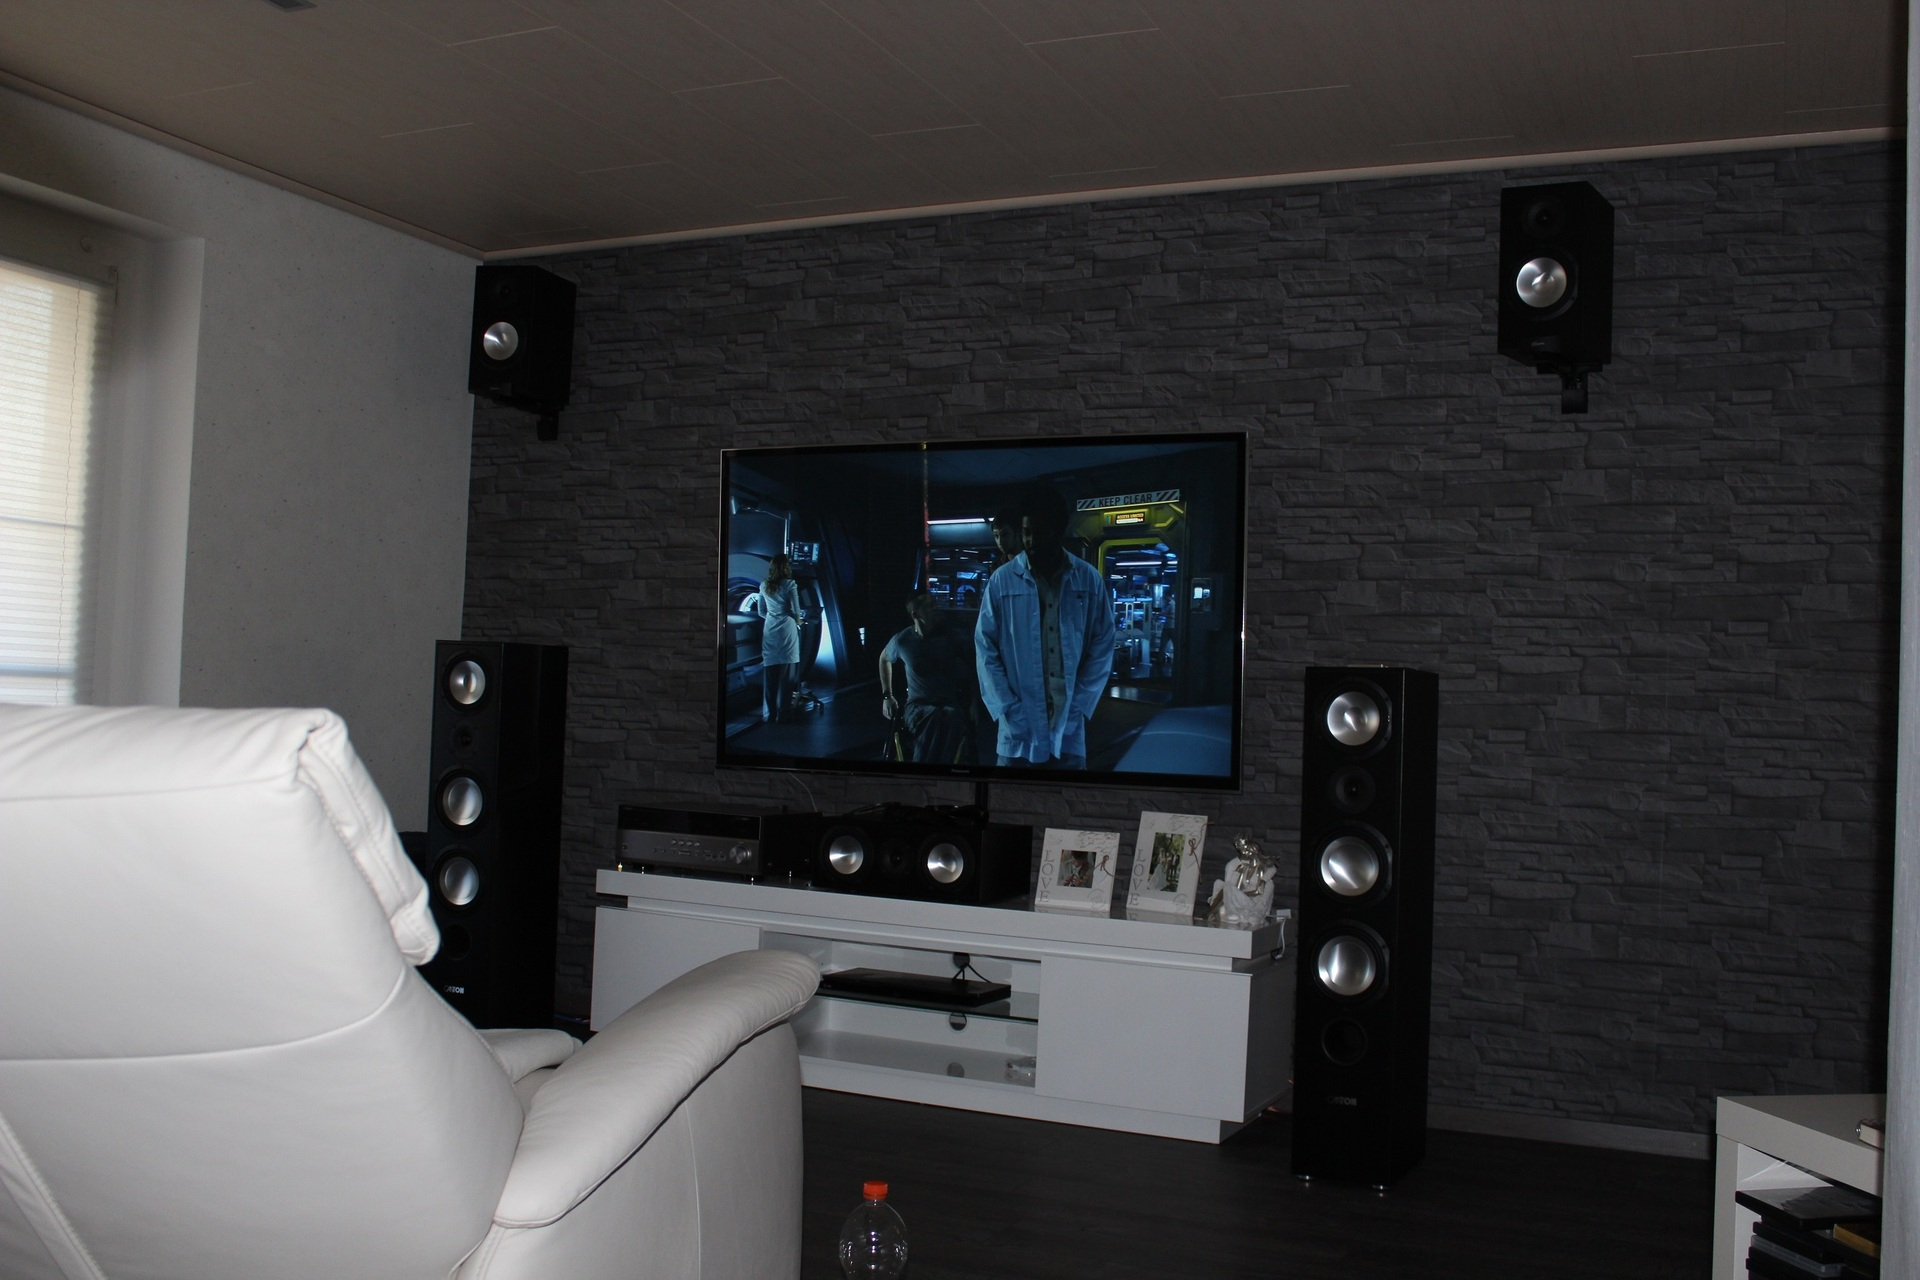 wohnzimmerkino von lumich heimkino surround. Black Bedroom Furniture Sets. Home Design Ideas